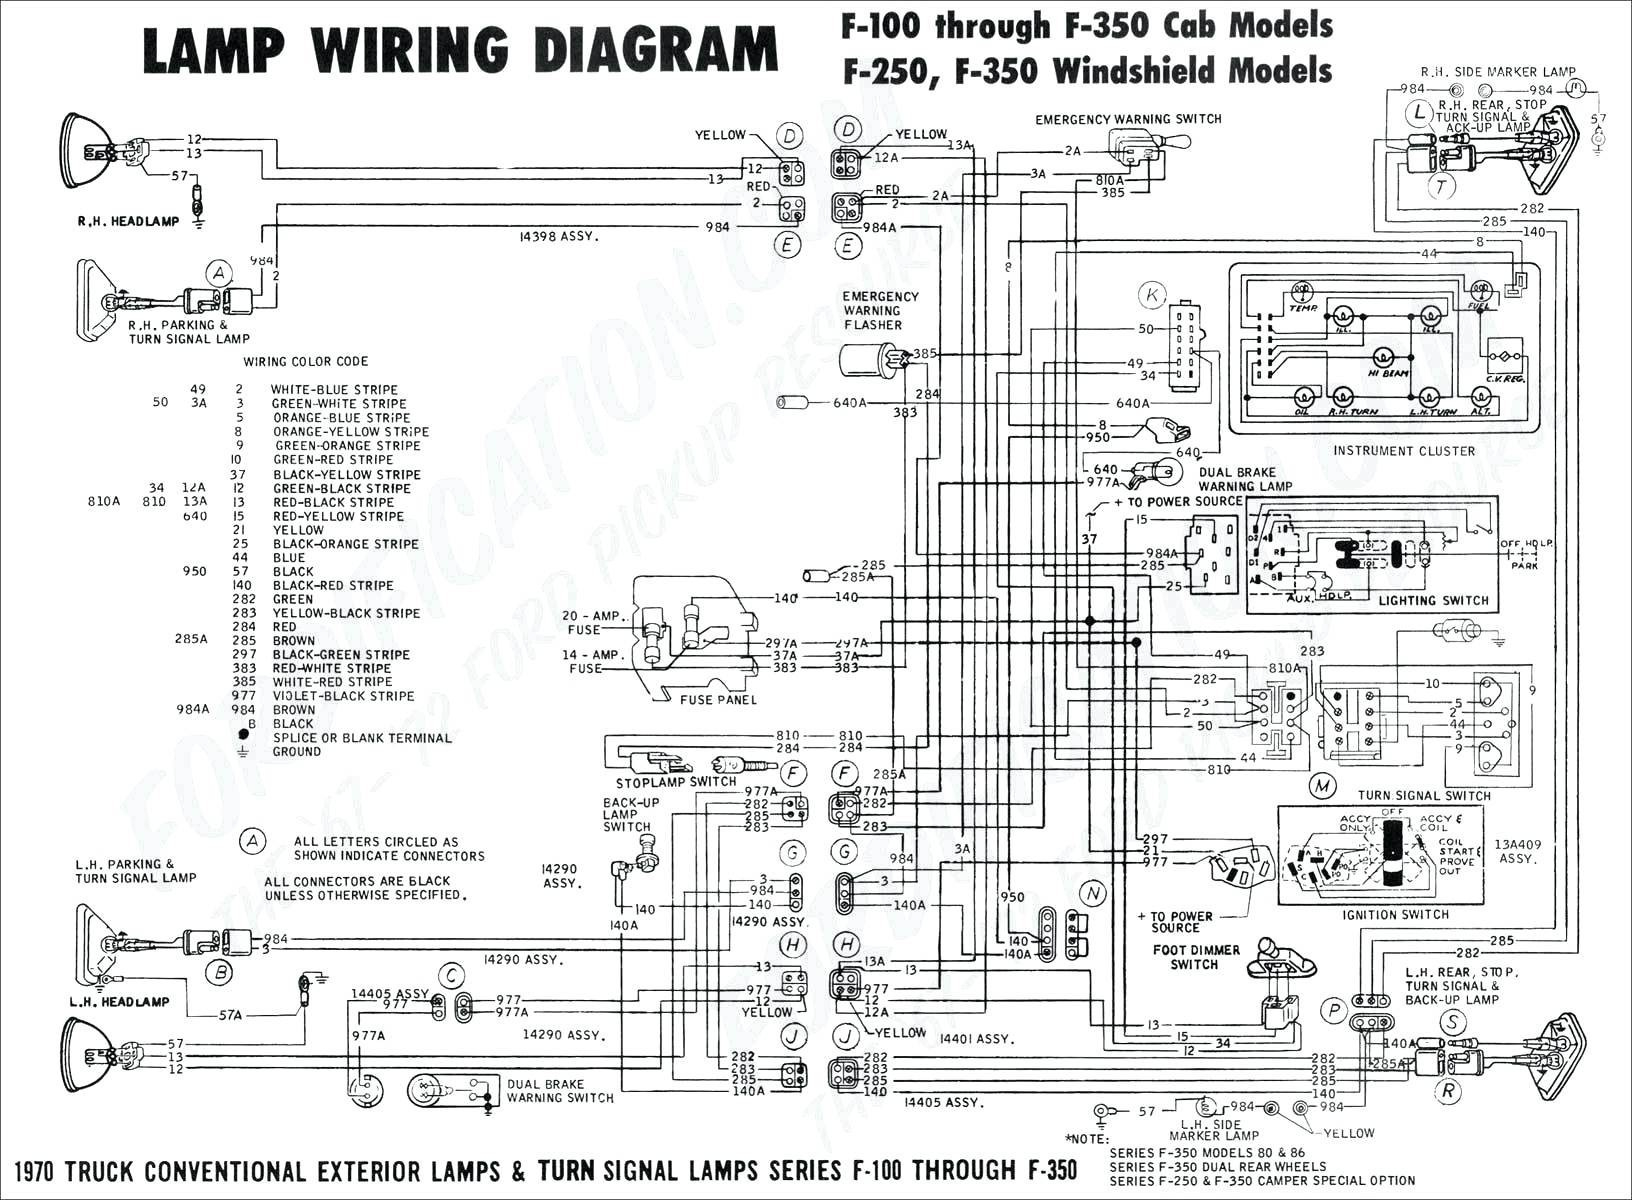 Wiring Diagram For Dexter Electric Kes - Owner Manual ... on trailer power supply, trailer light schematic, compact disc player schematic, rear window defroster schematic, boat trailer schematic, power steering schematic, trailer harness schematic, ford ignition schematic, air conditioning schematic, trailer brakes schematic, semi-trailer plug schematic, cd player schematic, trailer wire, trailer repair,